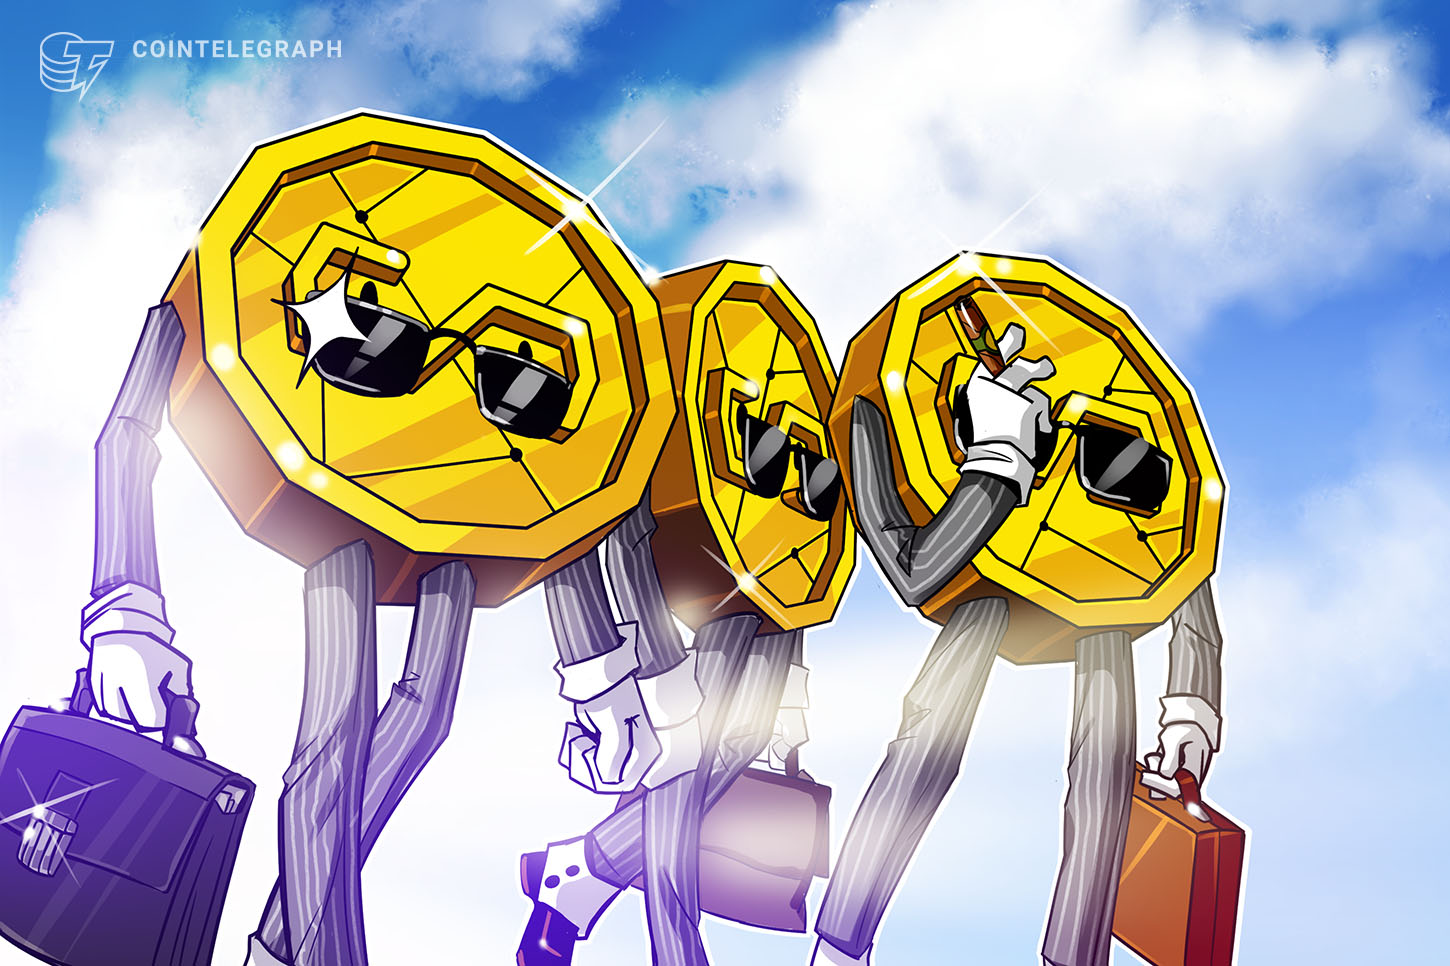 U.S. financial agencies will meet to discuss the future impact of stablecoins